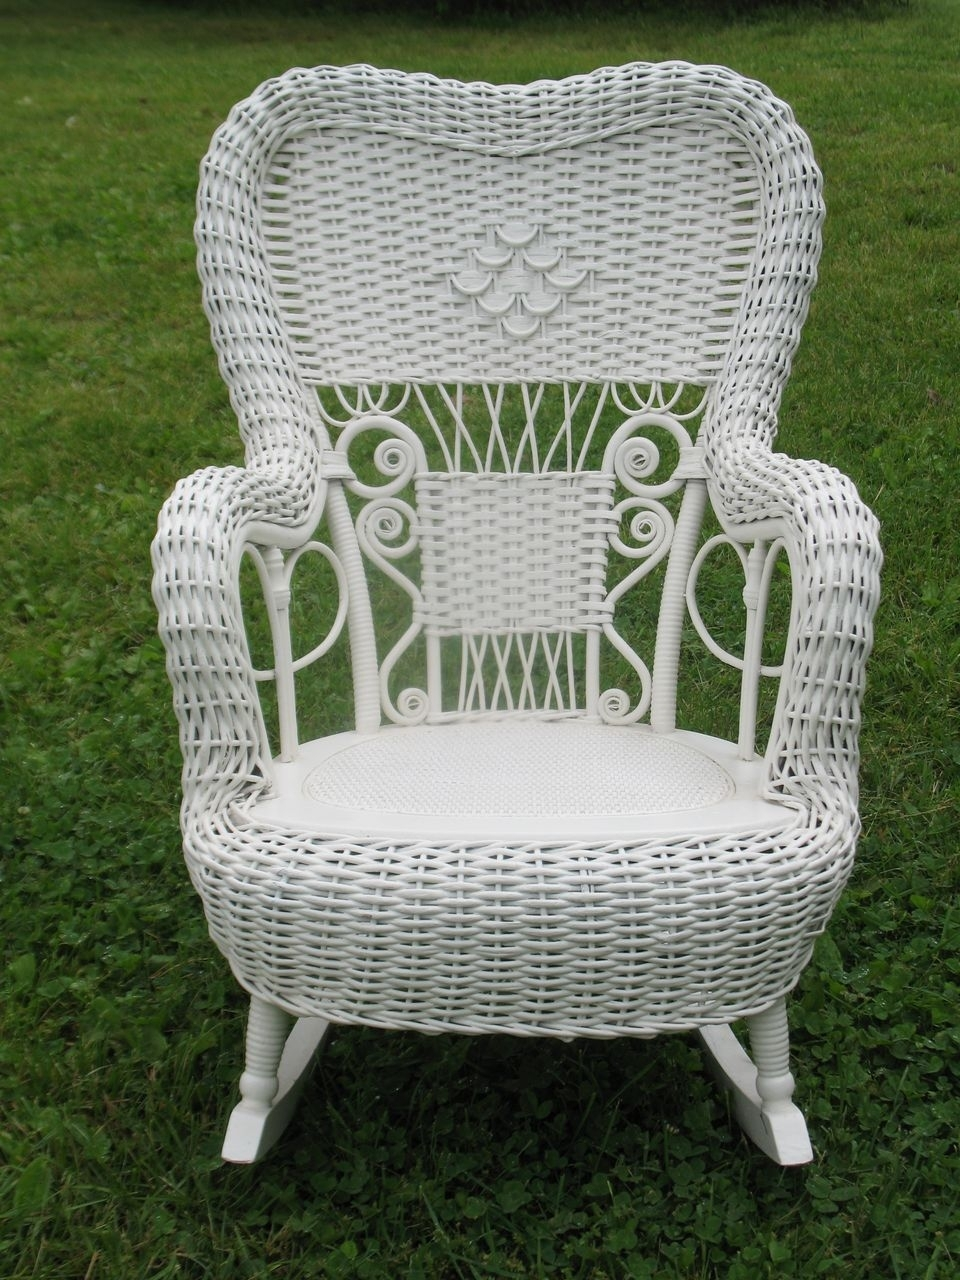 Antique Wicker Furniture Prices – Image Antique And Candle In Antique Wicker Rocking Chairs (#2 of 15)